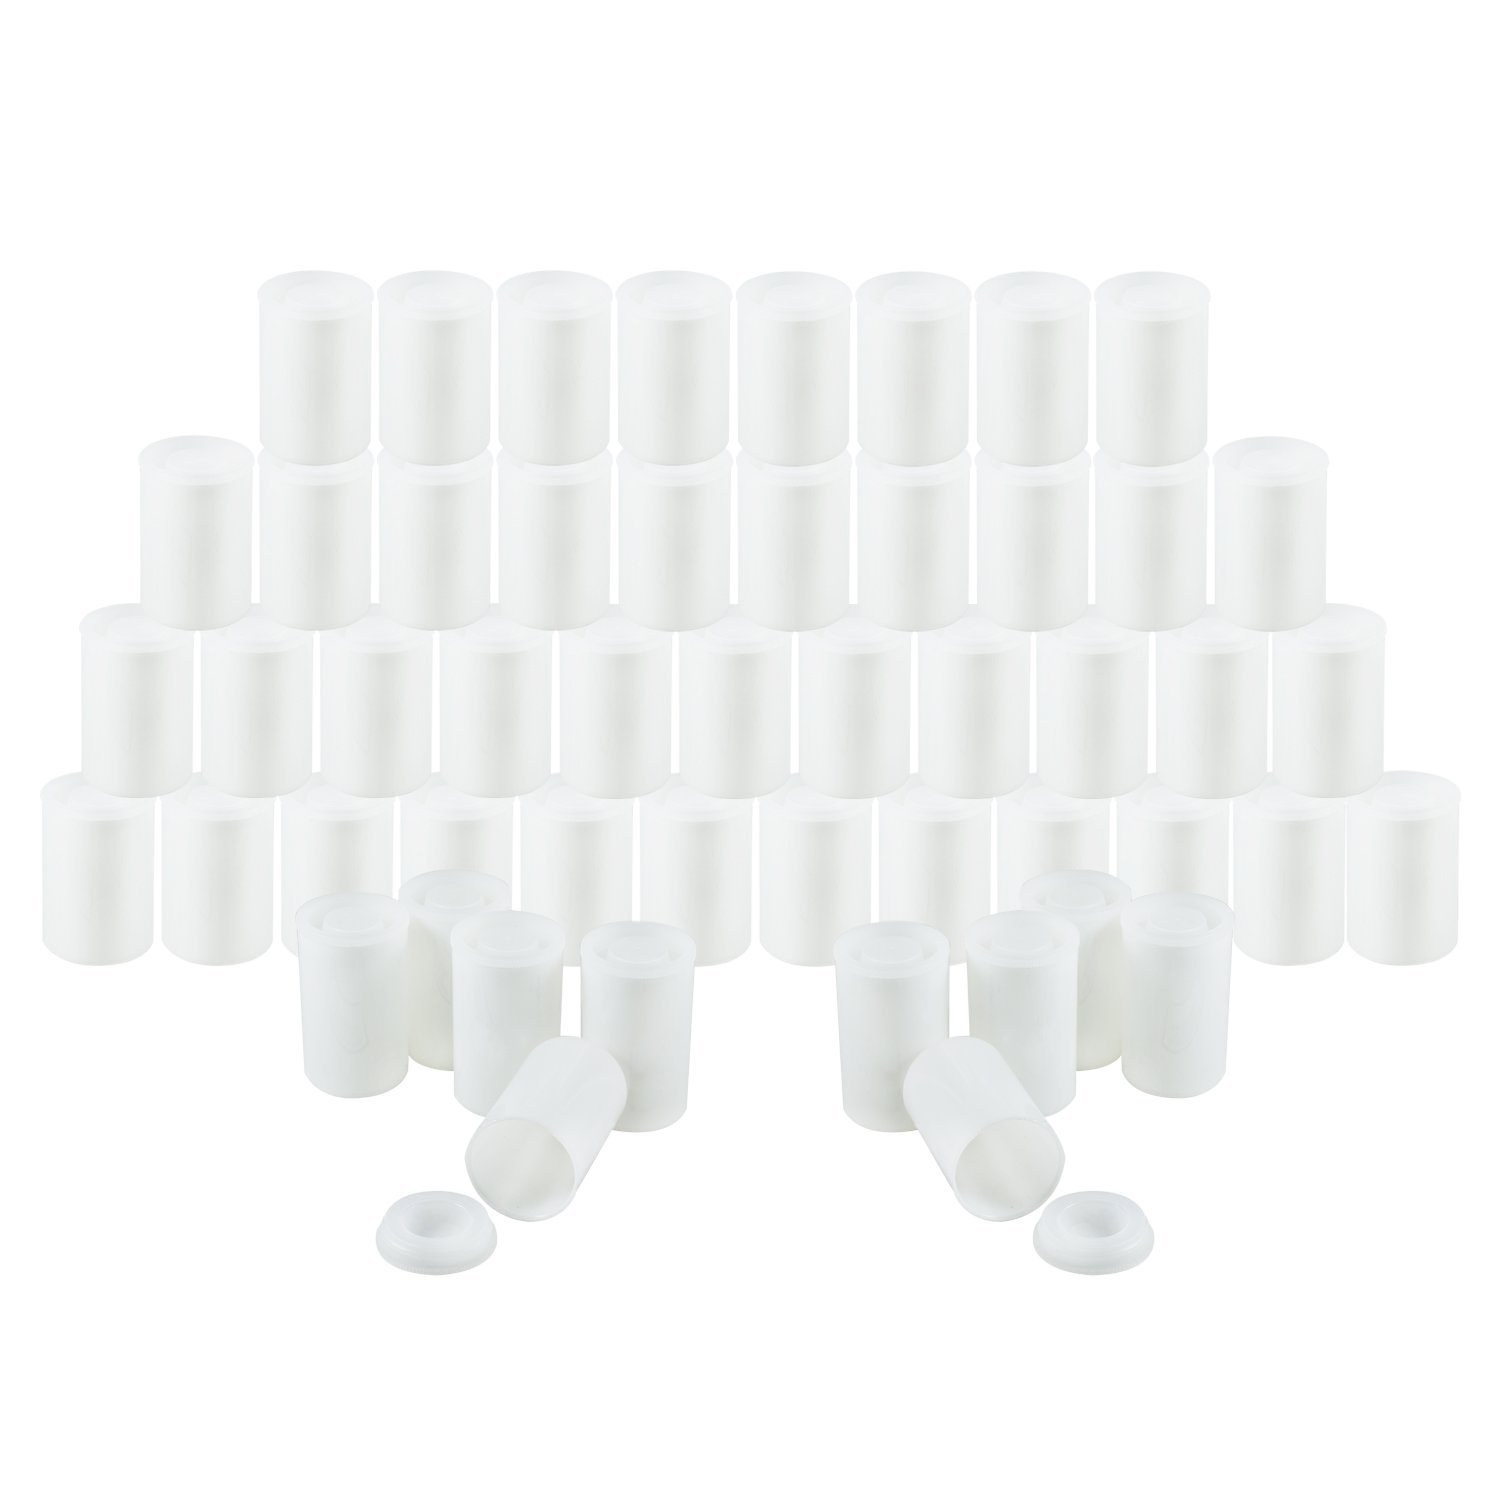 Houseables Film Canisters with Caps, 35MM Empty Camera Reel Containers, 60 Pack, White, 2'' H, 1'' W, Plastic, Films Developing Processing Tube, Roll Case, for Small Accessories, Beads, Alka Seltzer